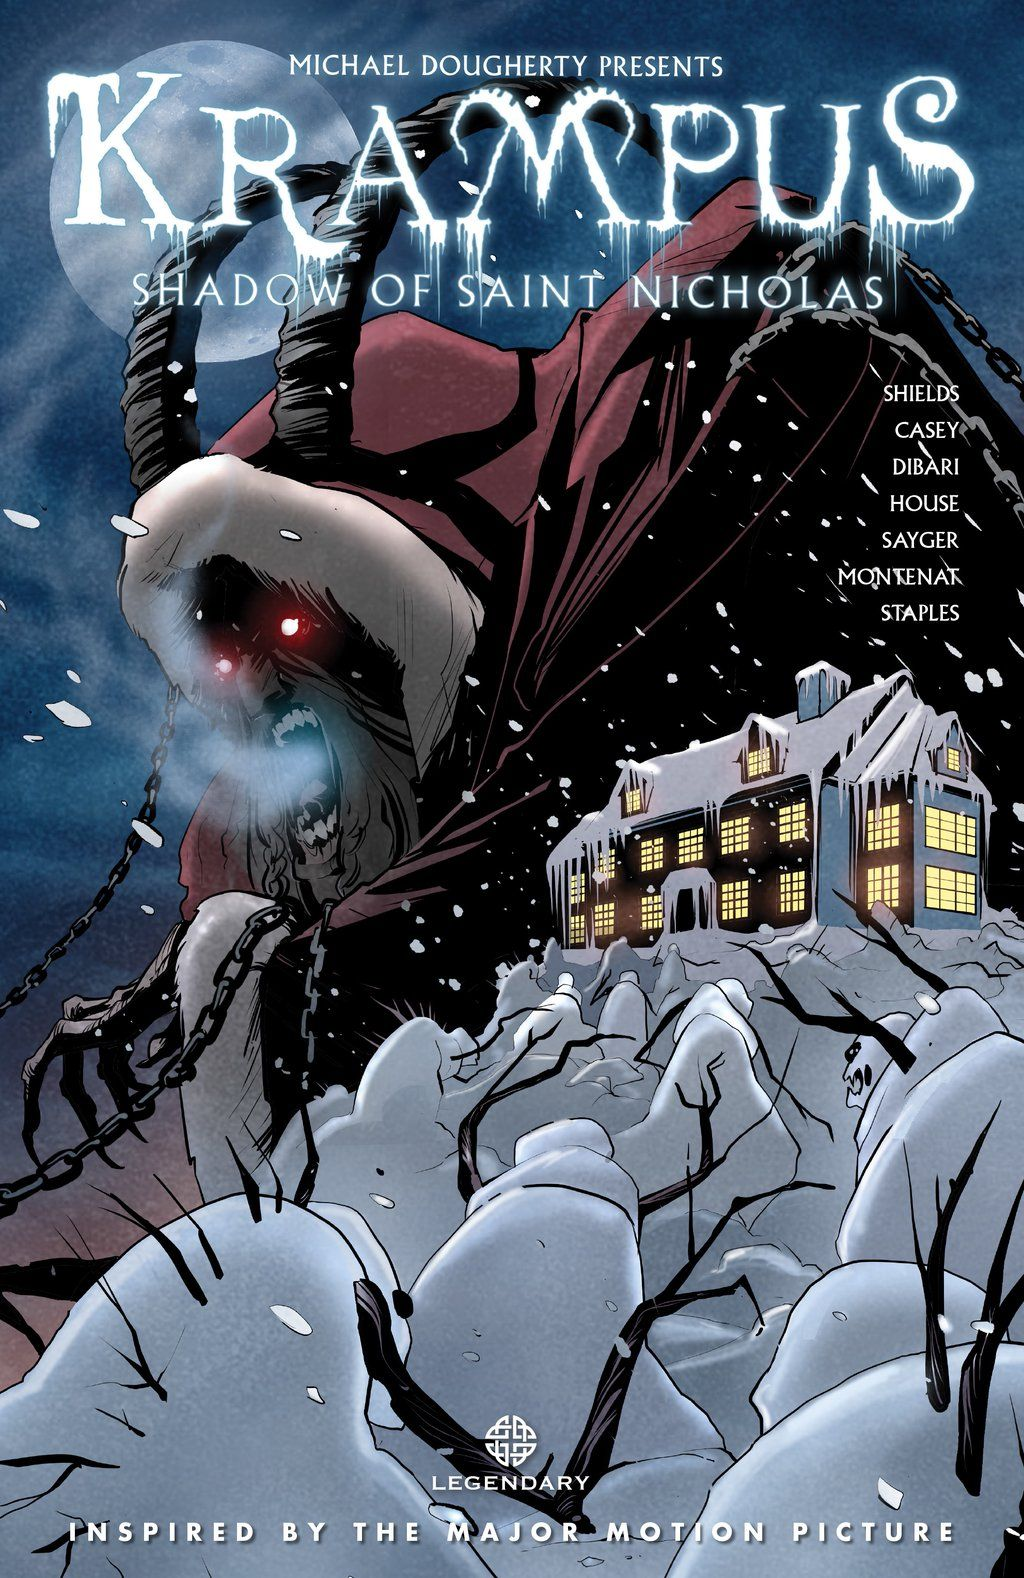 Legendary on Krampus movie, Saint nicholas, Horror